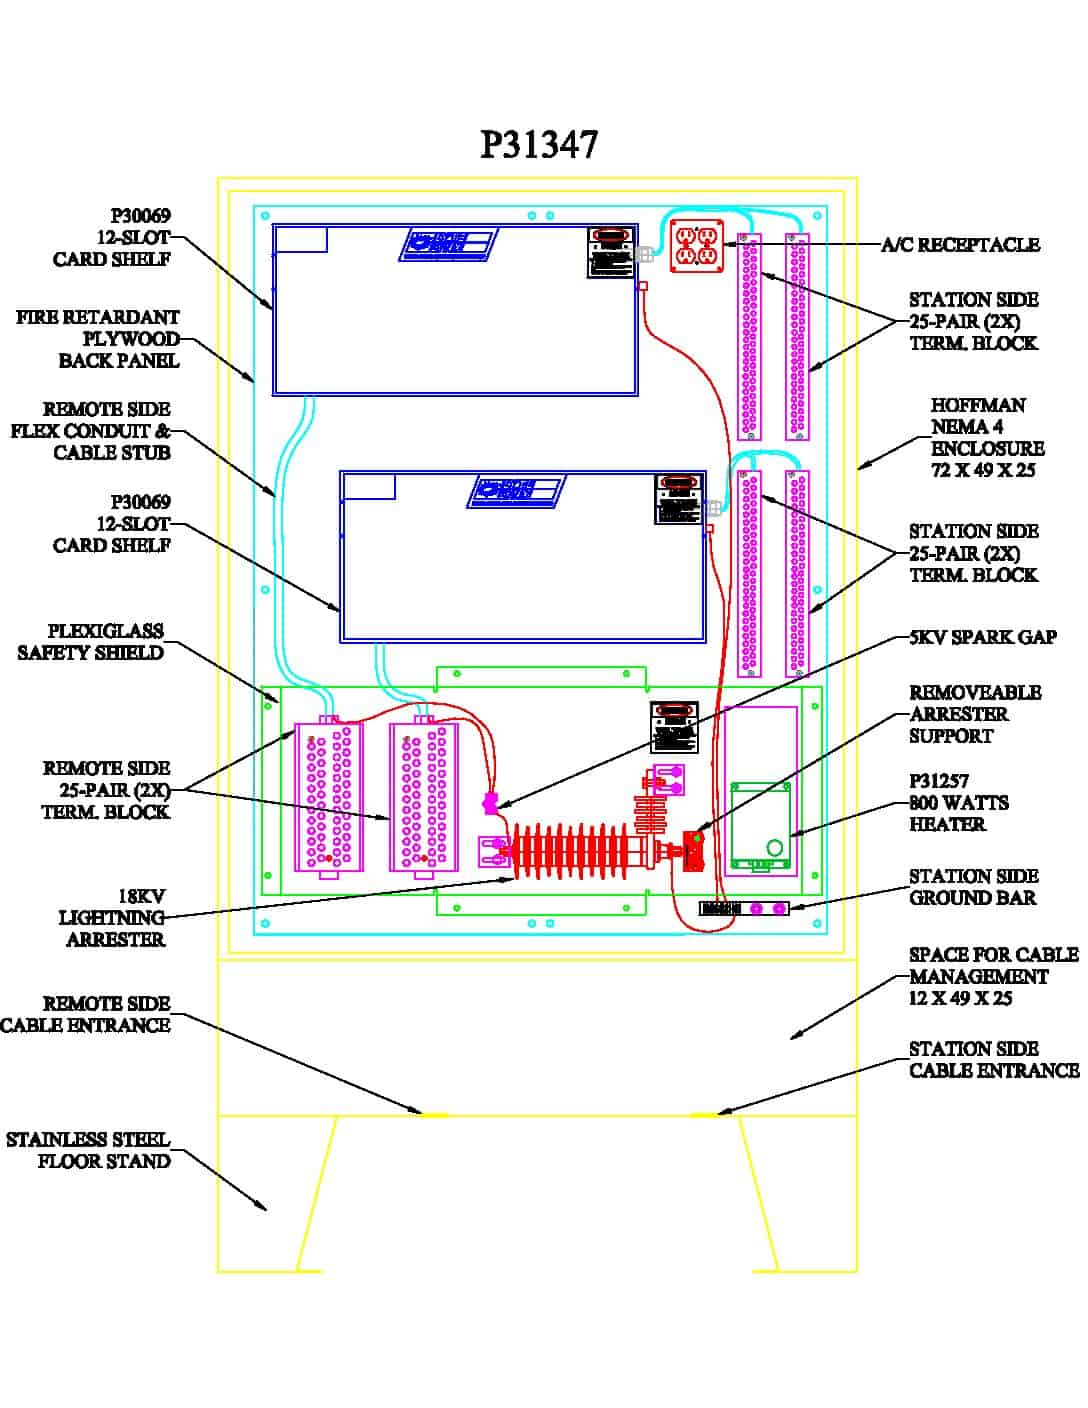 P31347 Turnkey Protection Packages – 12 slot PDF thumbnail